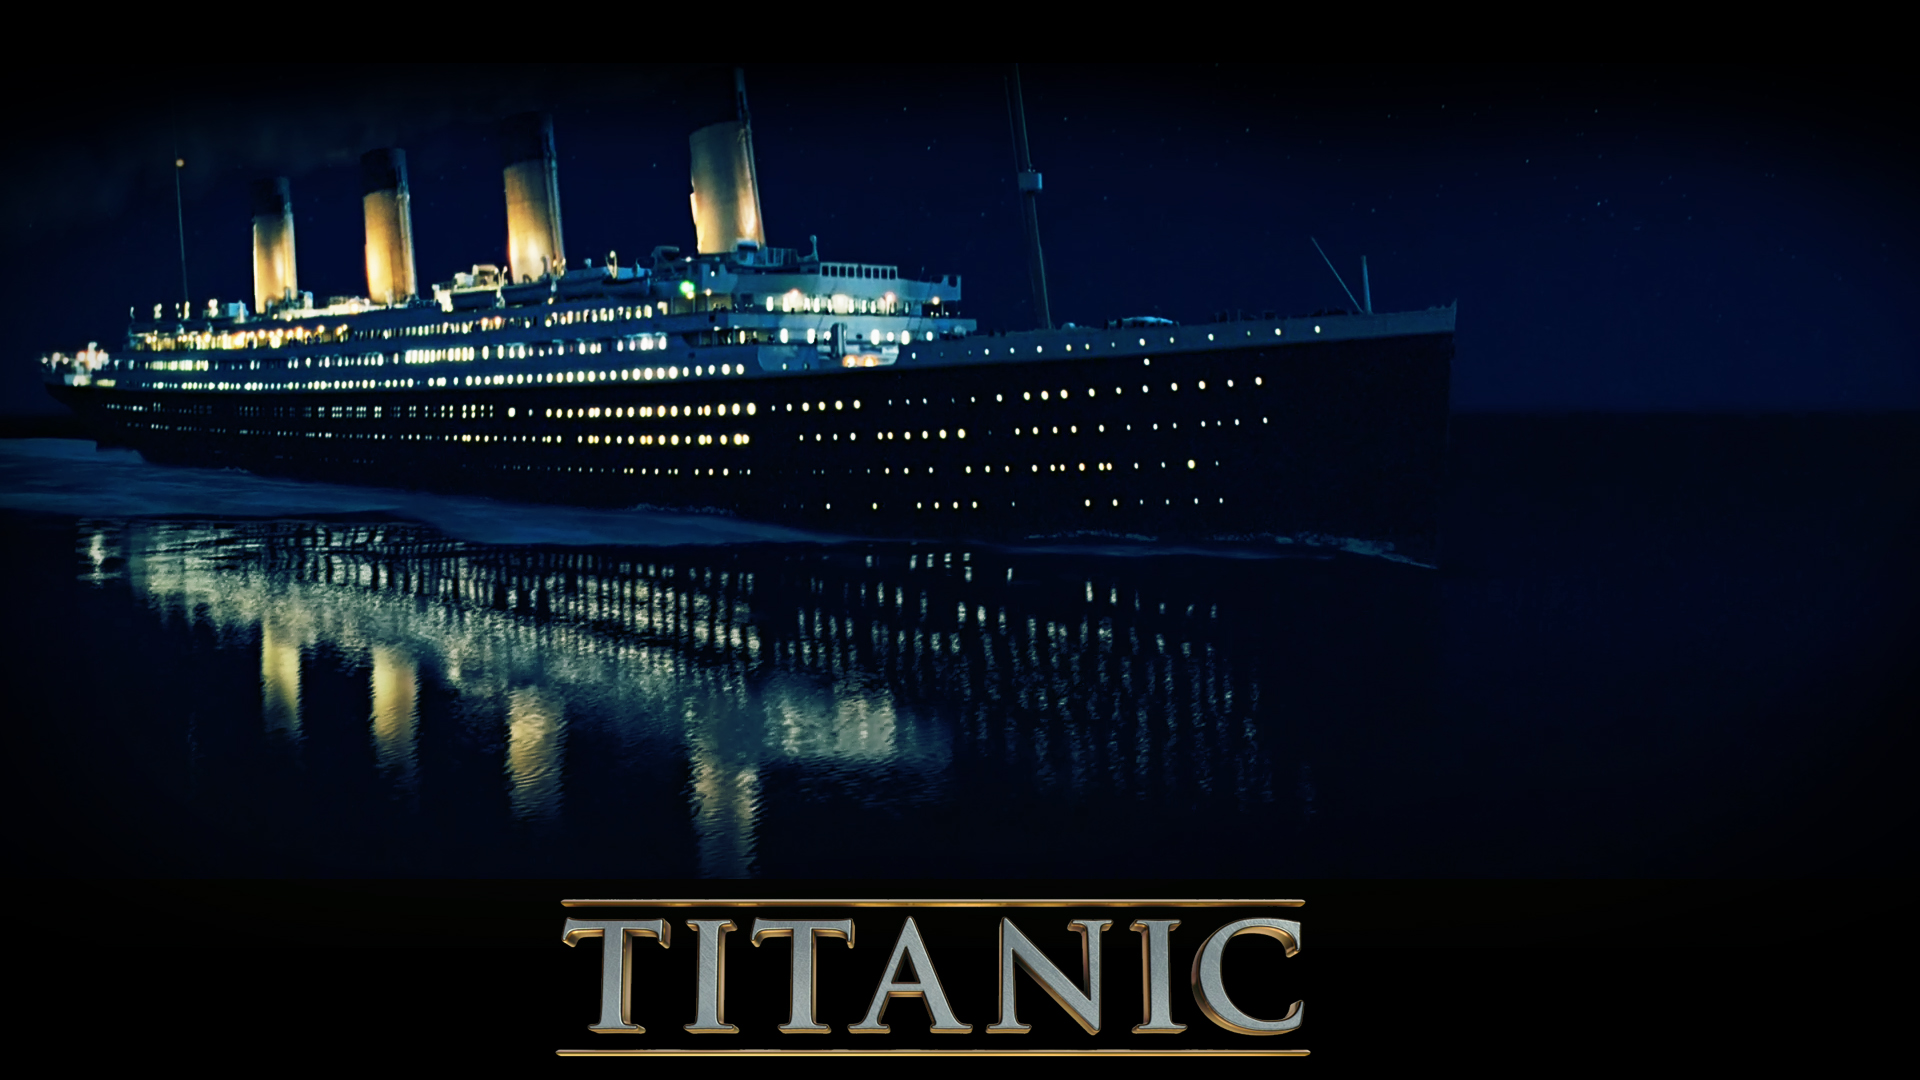 Titanic 3D wallpaper 1